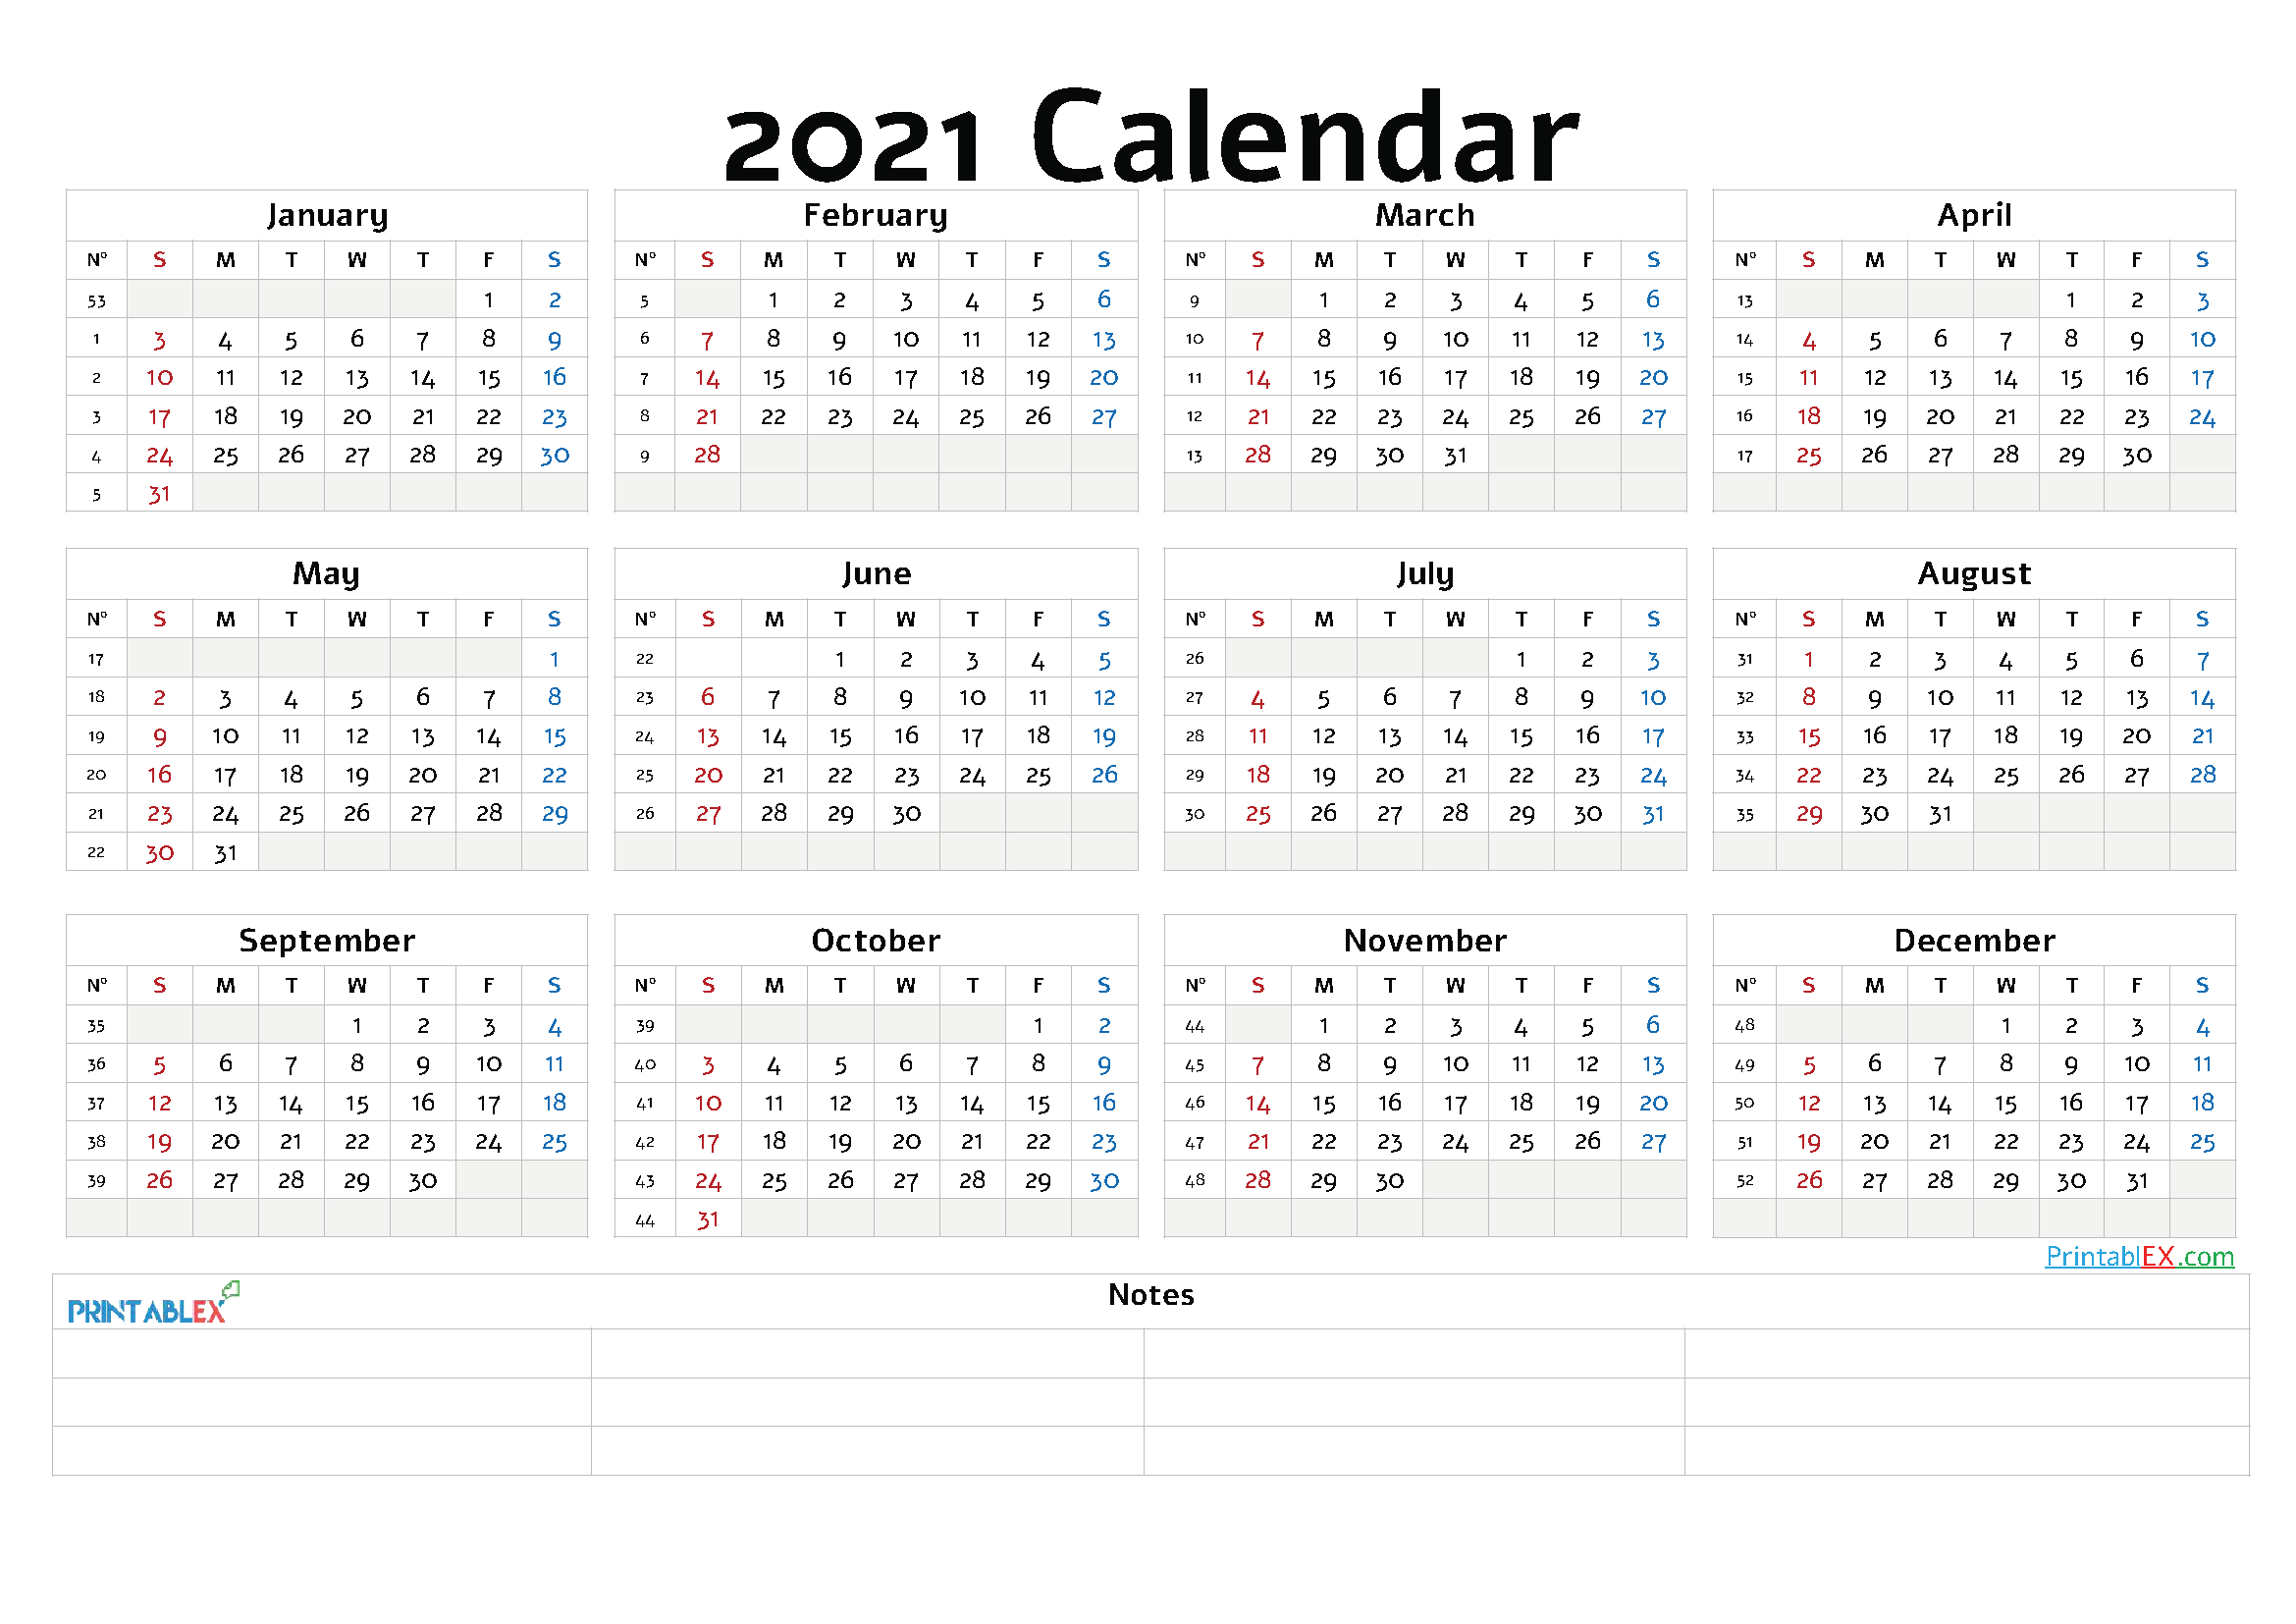 Printable 2021 Yearly Calendar With Week Numbers – 12 pertaining to Monthly Calendar By Week Number 2021